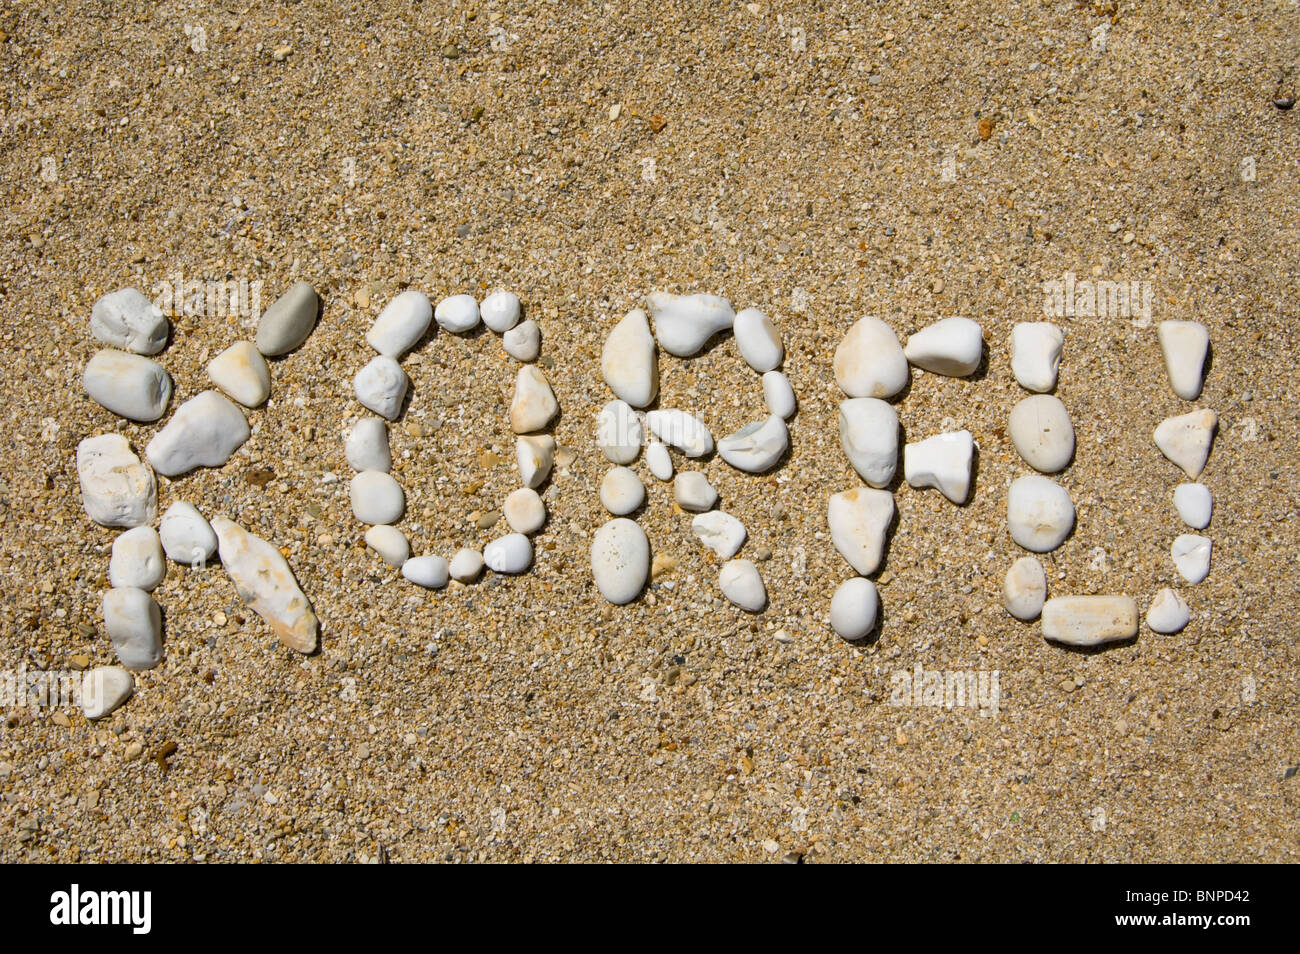 KORFU spelled out in pebbles on a beach at Kassiopi on the Greek Mediterranean island of Corfu Greece GR - Stock Image